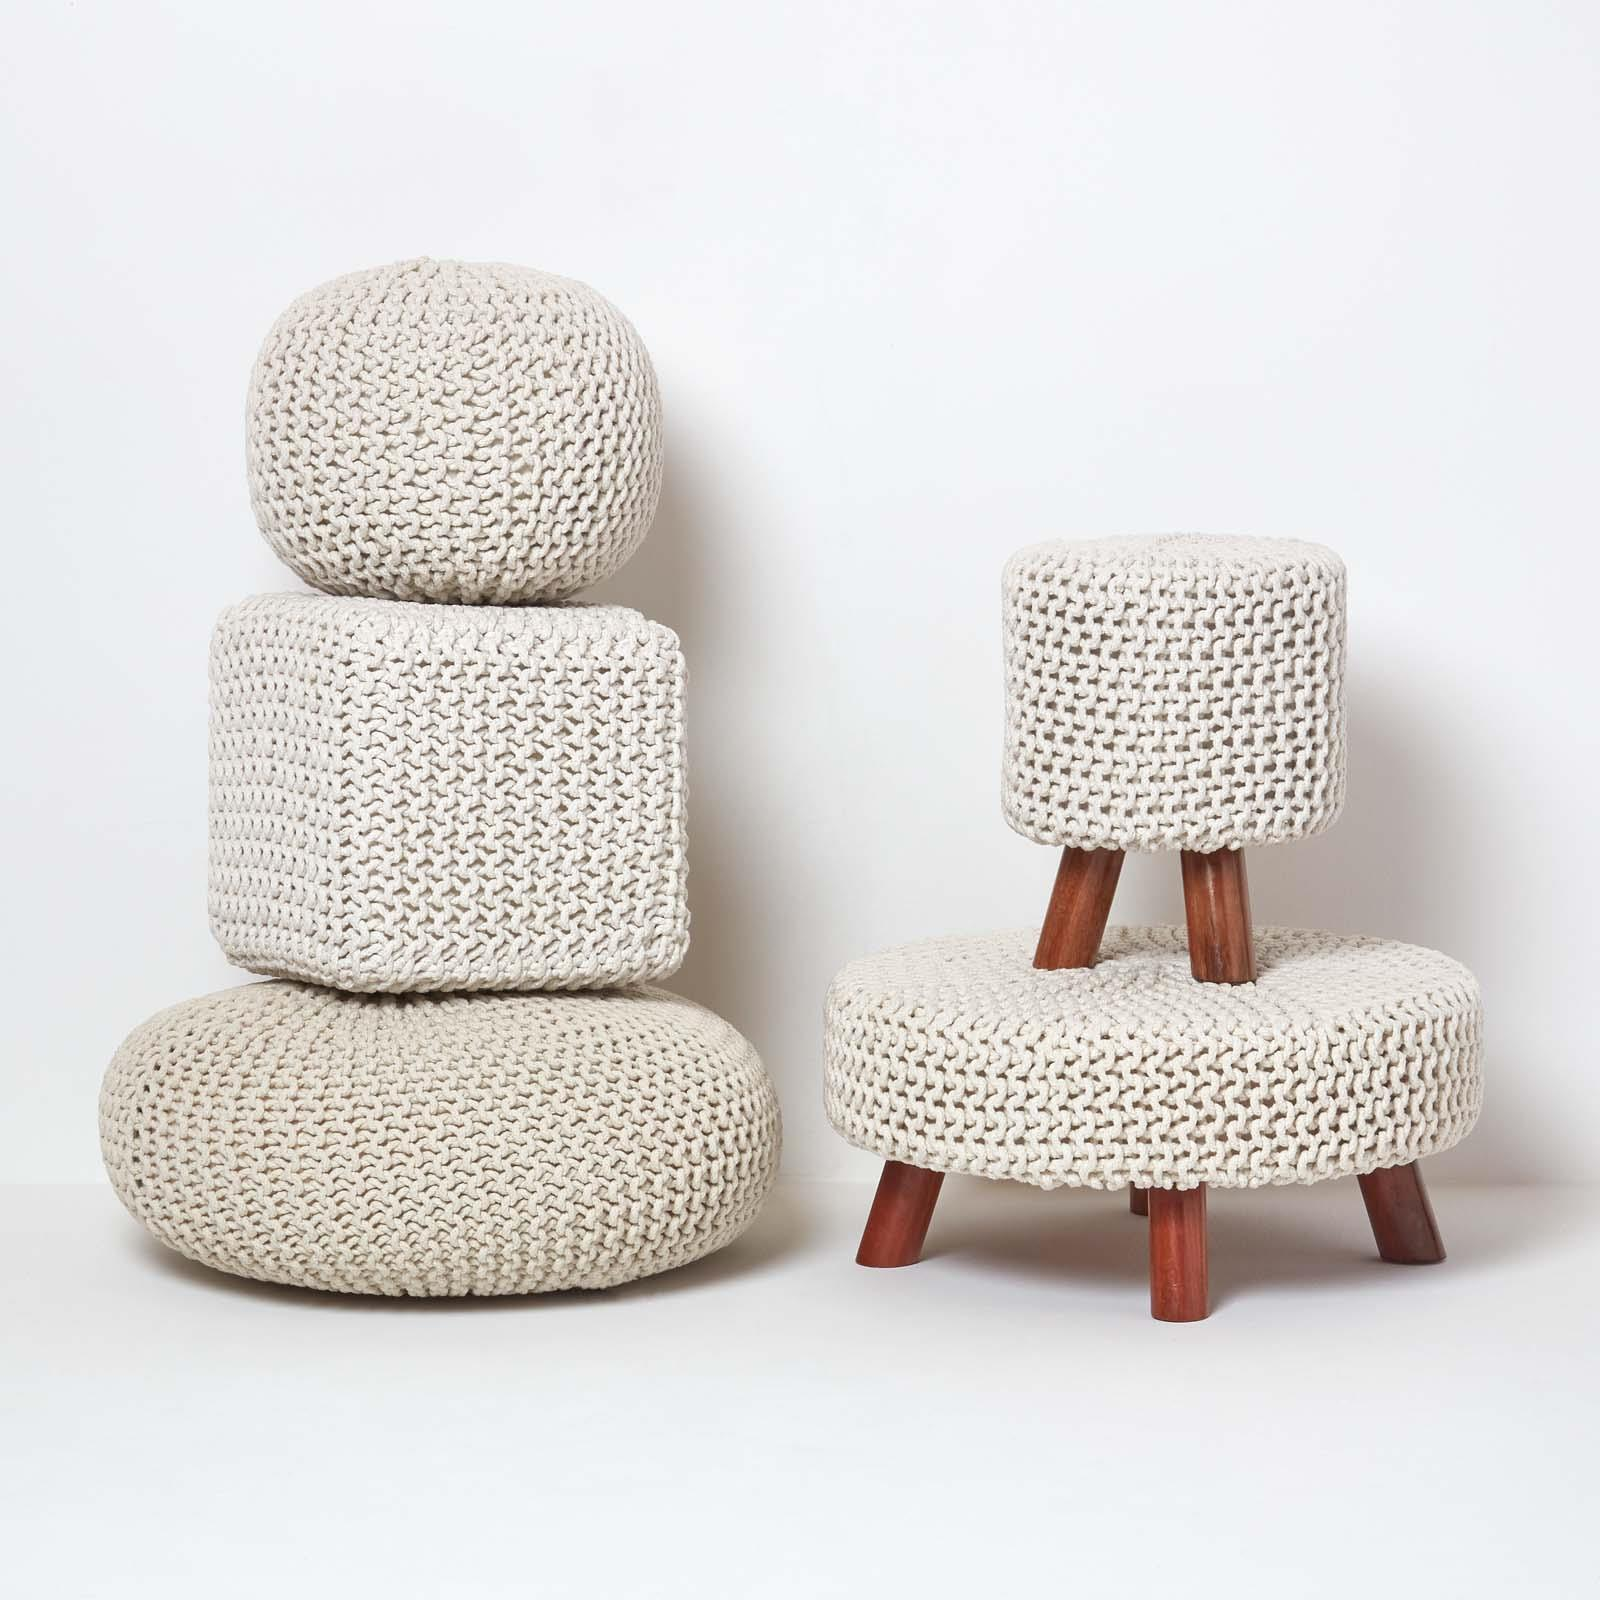 Hand-Knitted-100-Cotton-Pouffes-Round-Sphere-Or-Cube-Square-Chunky-Footstools thumbnail 95